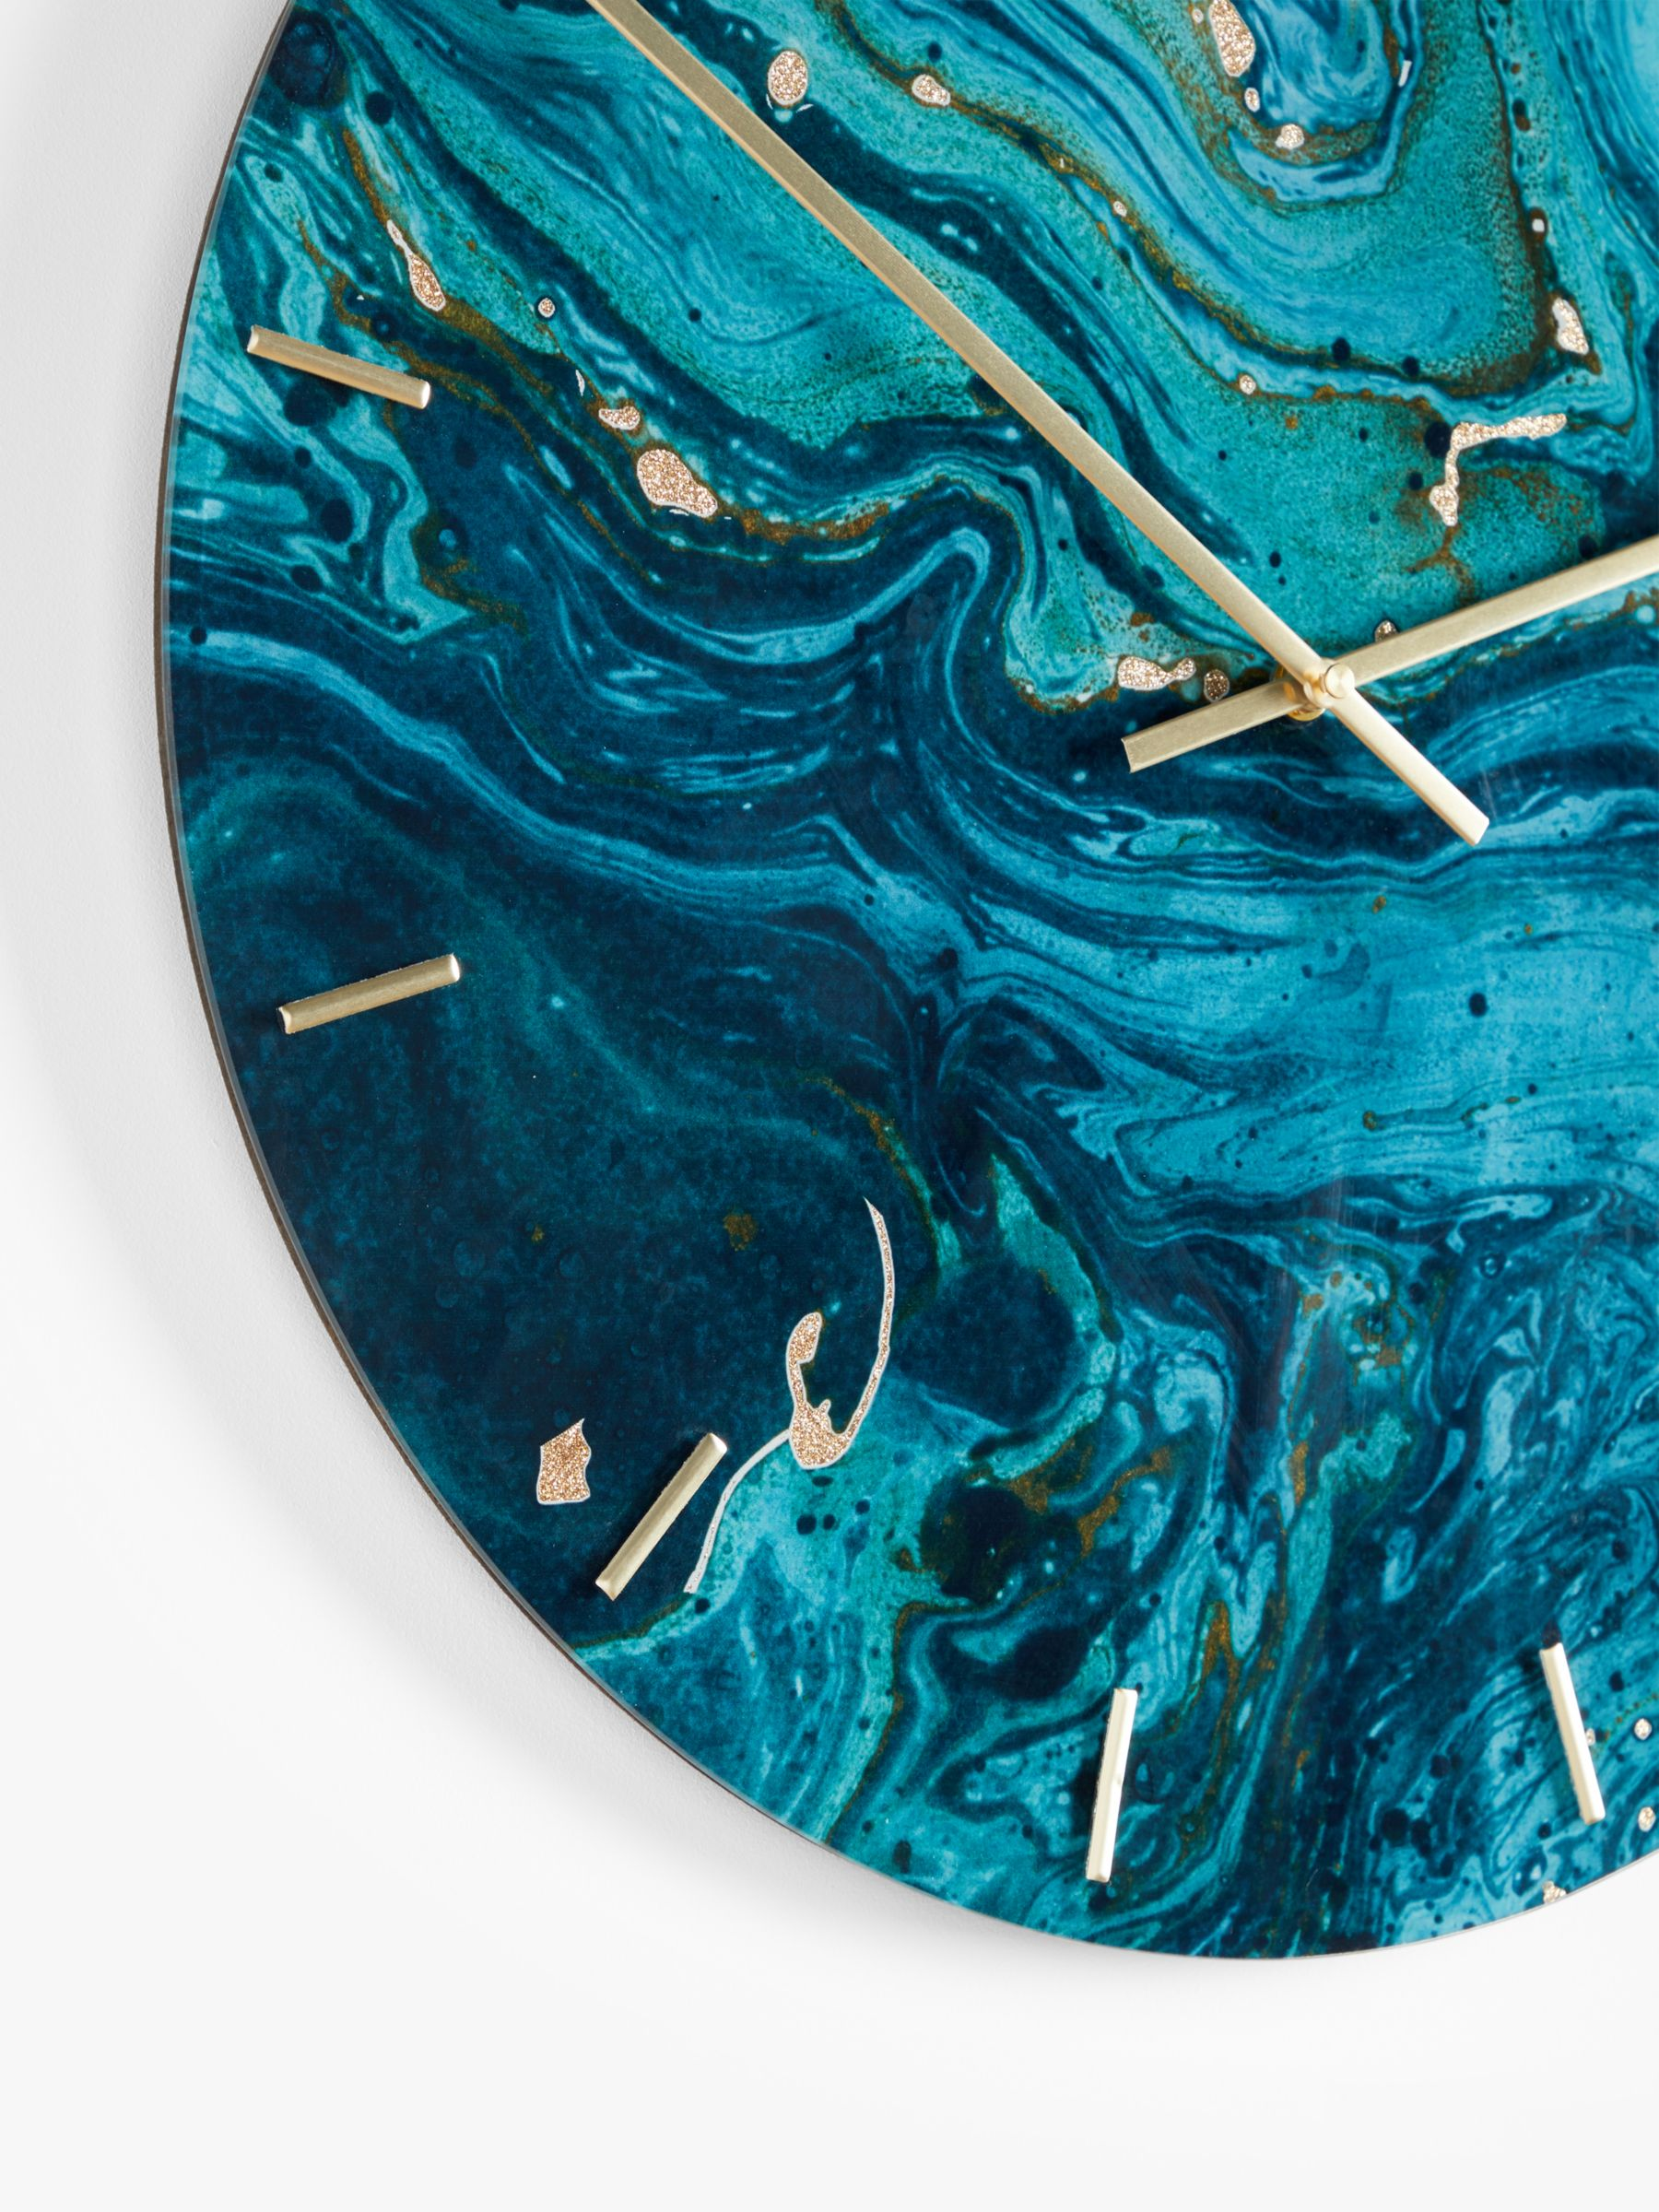 John Lewis Partners Marble Effect Glass Analogue Wall Clock 50cm Blue At John Lewis Partners